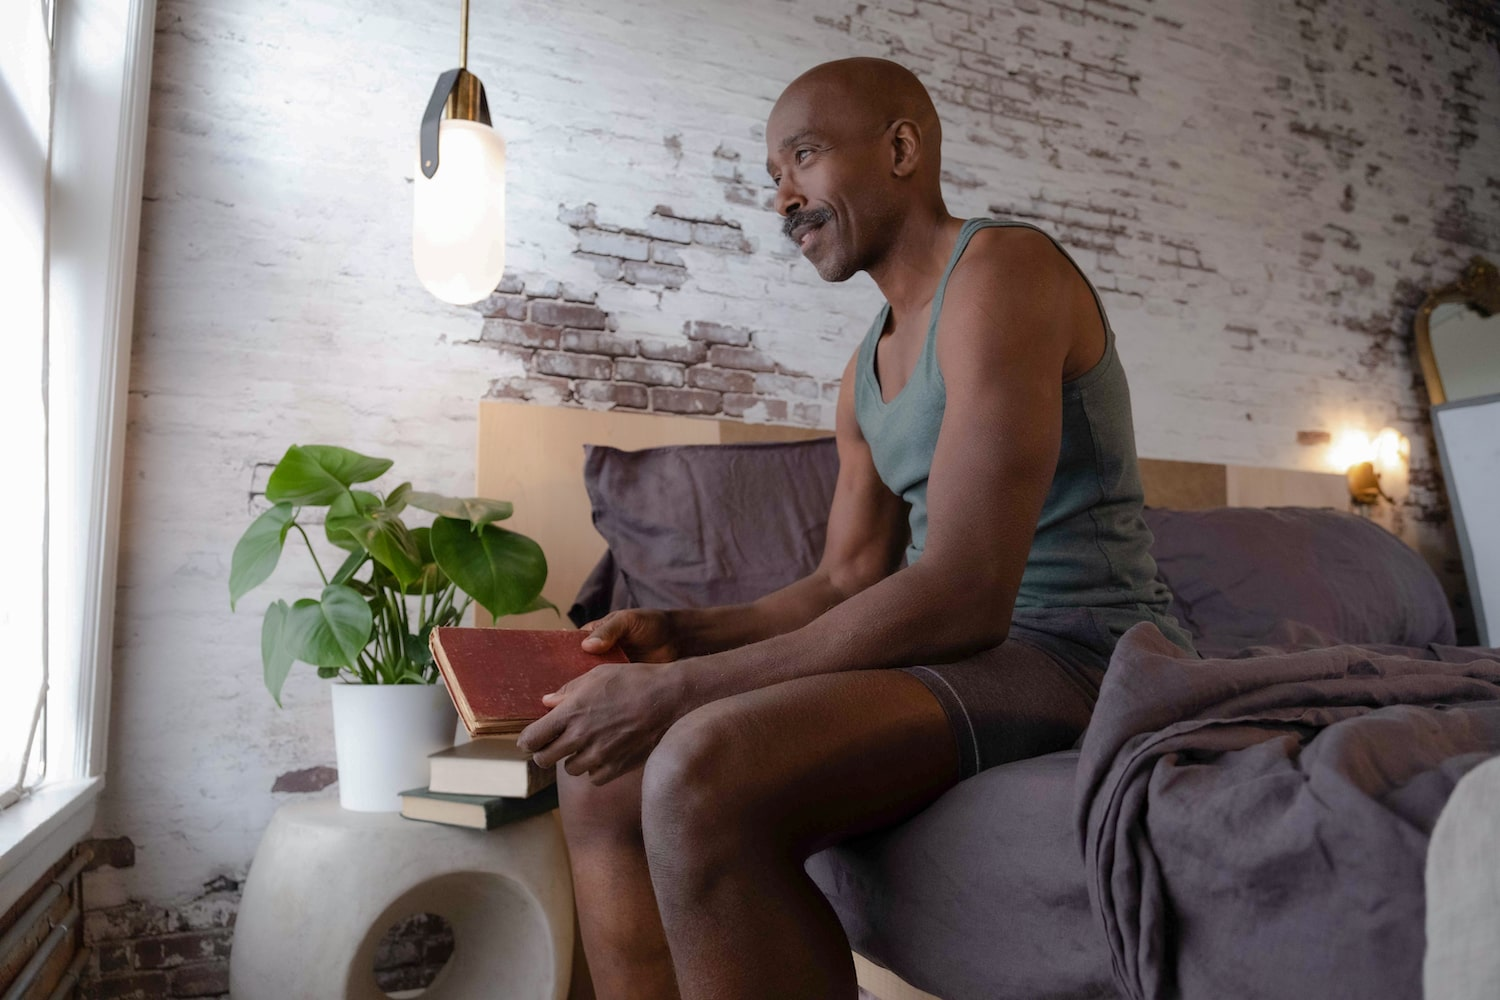 Ntare on bed with book